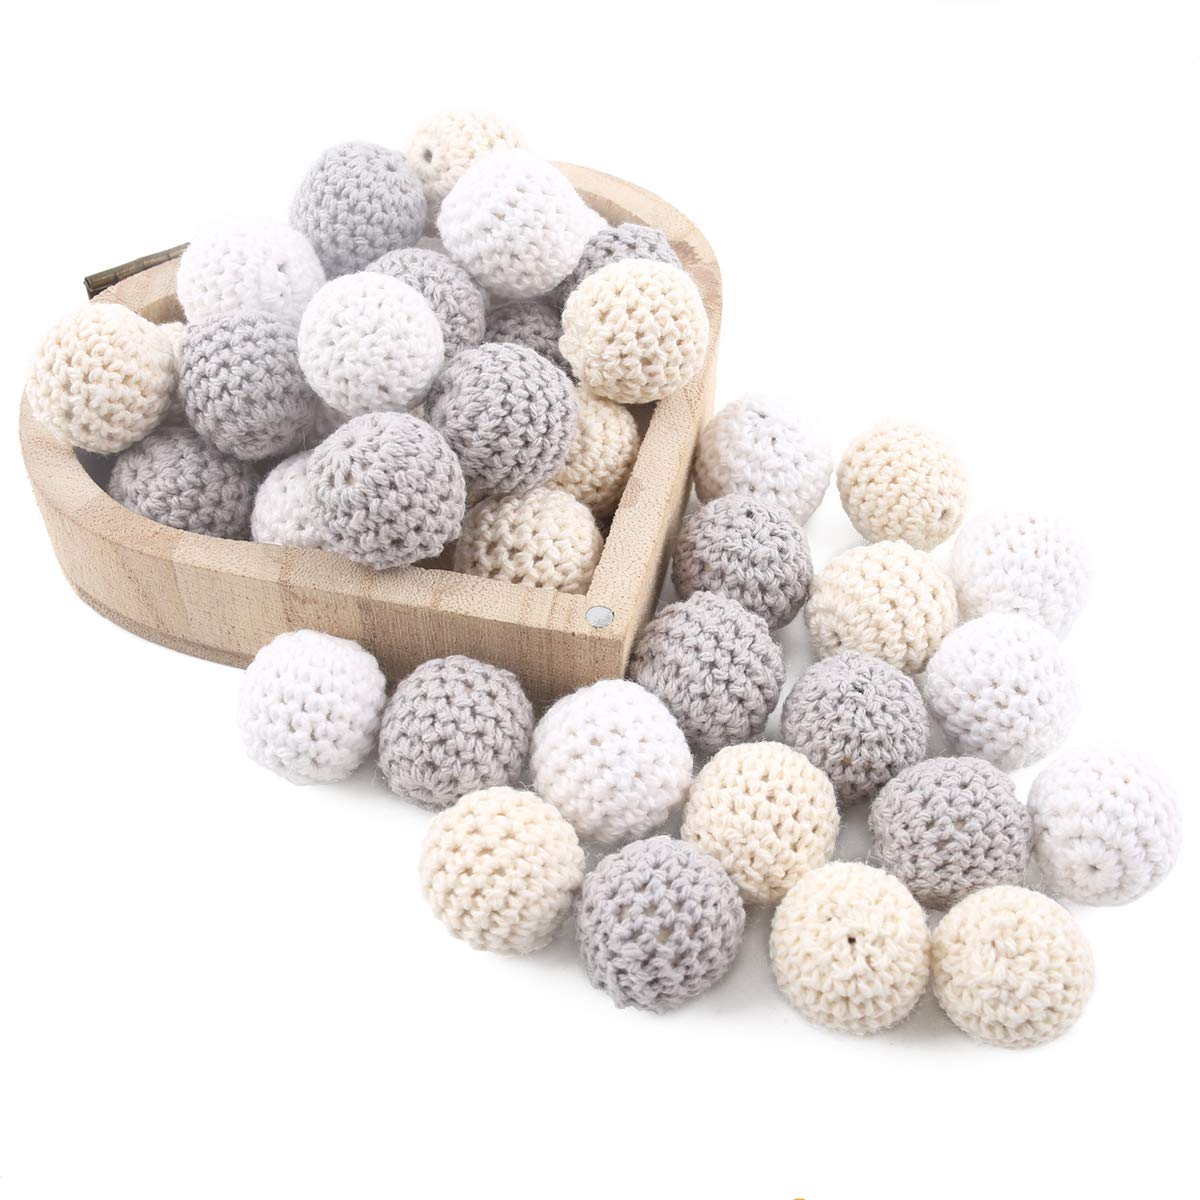 Baby Love Home 50pc White Gray Series Wooden Crochet Beads DIY Teething Necklace Bracelet for Baby Handmade Wooden teether Baby Teether Toys by Baby Love Home